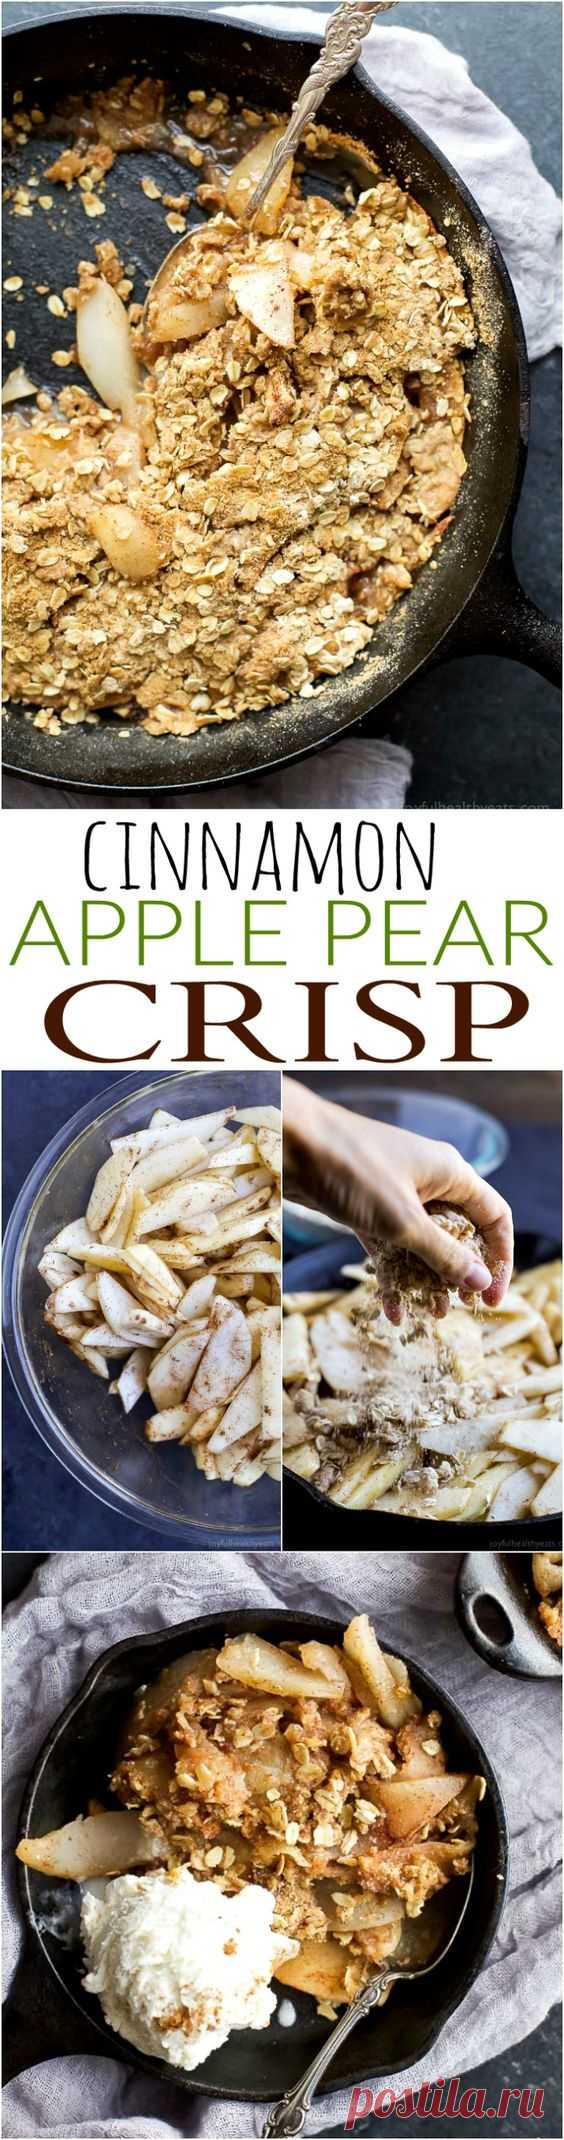 Apple Pear Crisp 50 mins to make, serves 6-8 | Cures Are Ahead